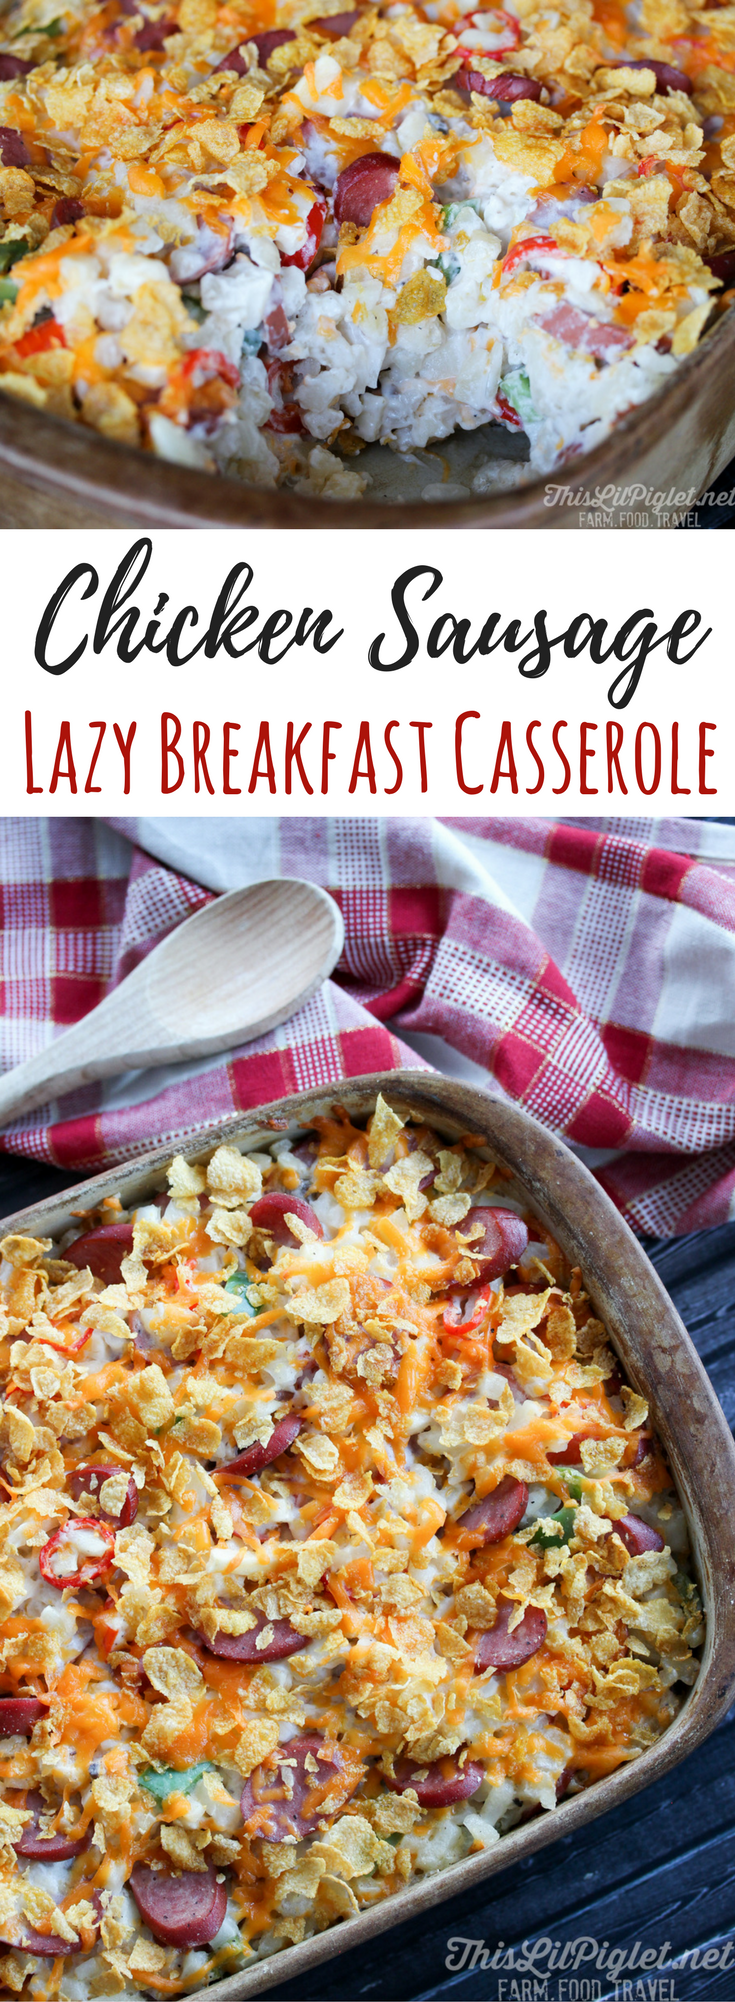 Chicken Sausage Lazy Breakfast Casserole Bake // thislilpiglet.net